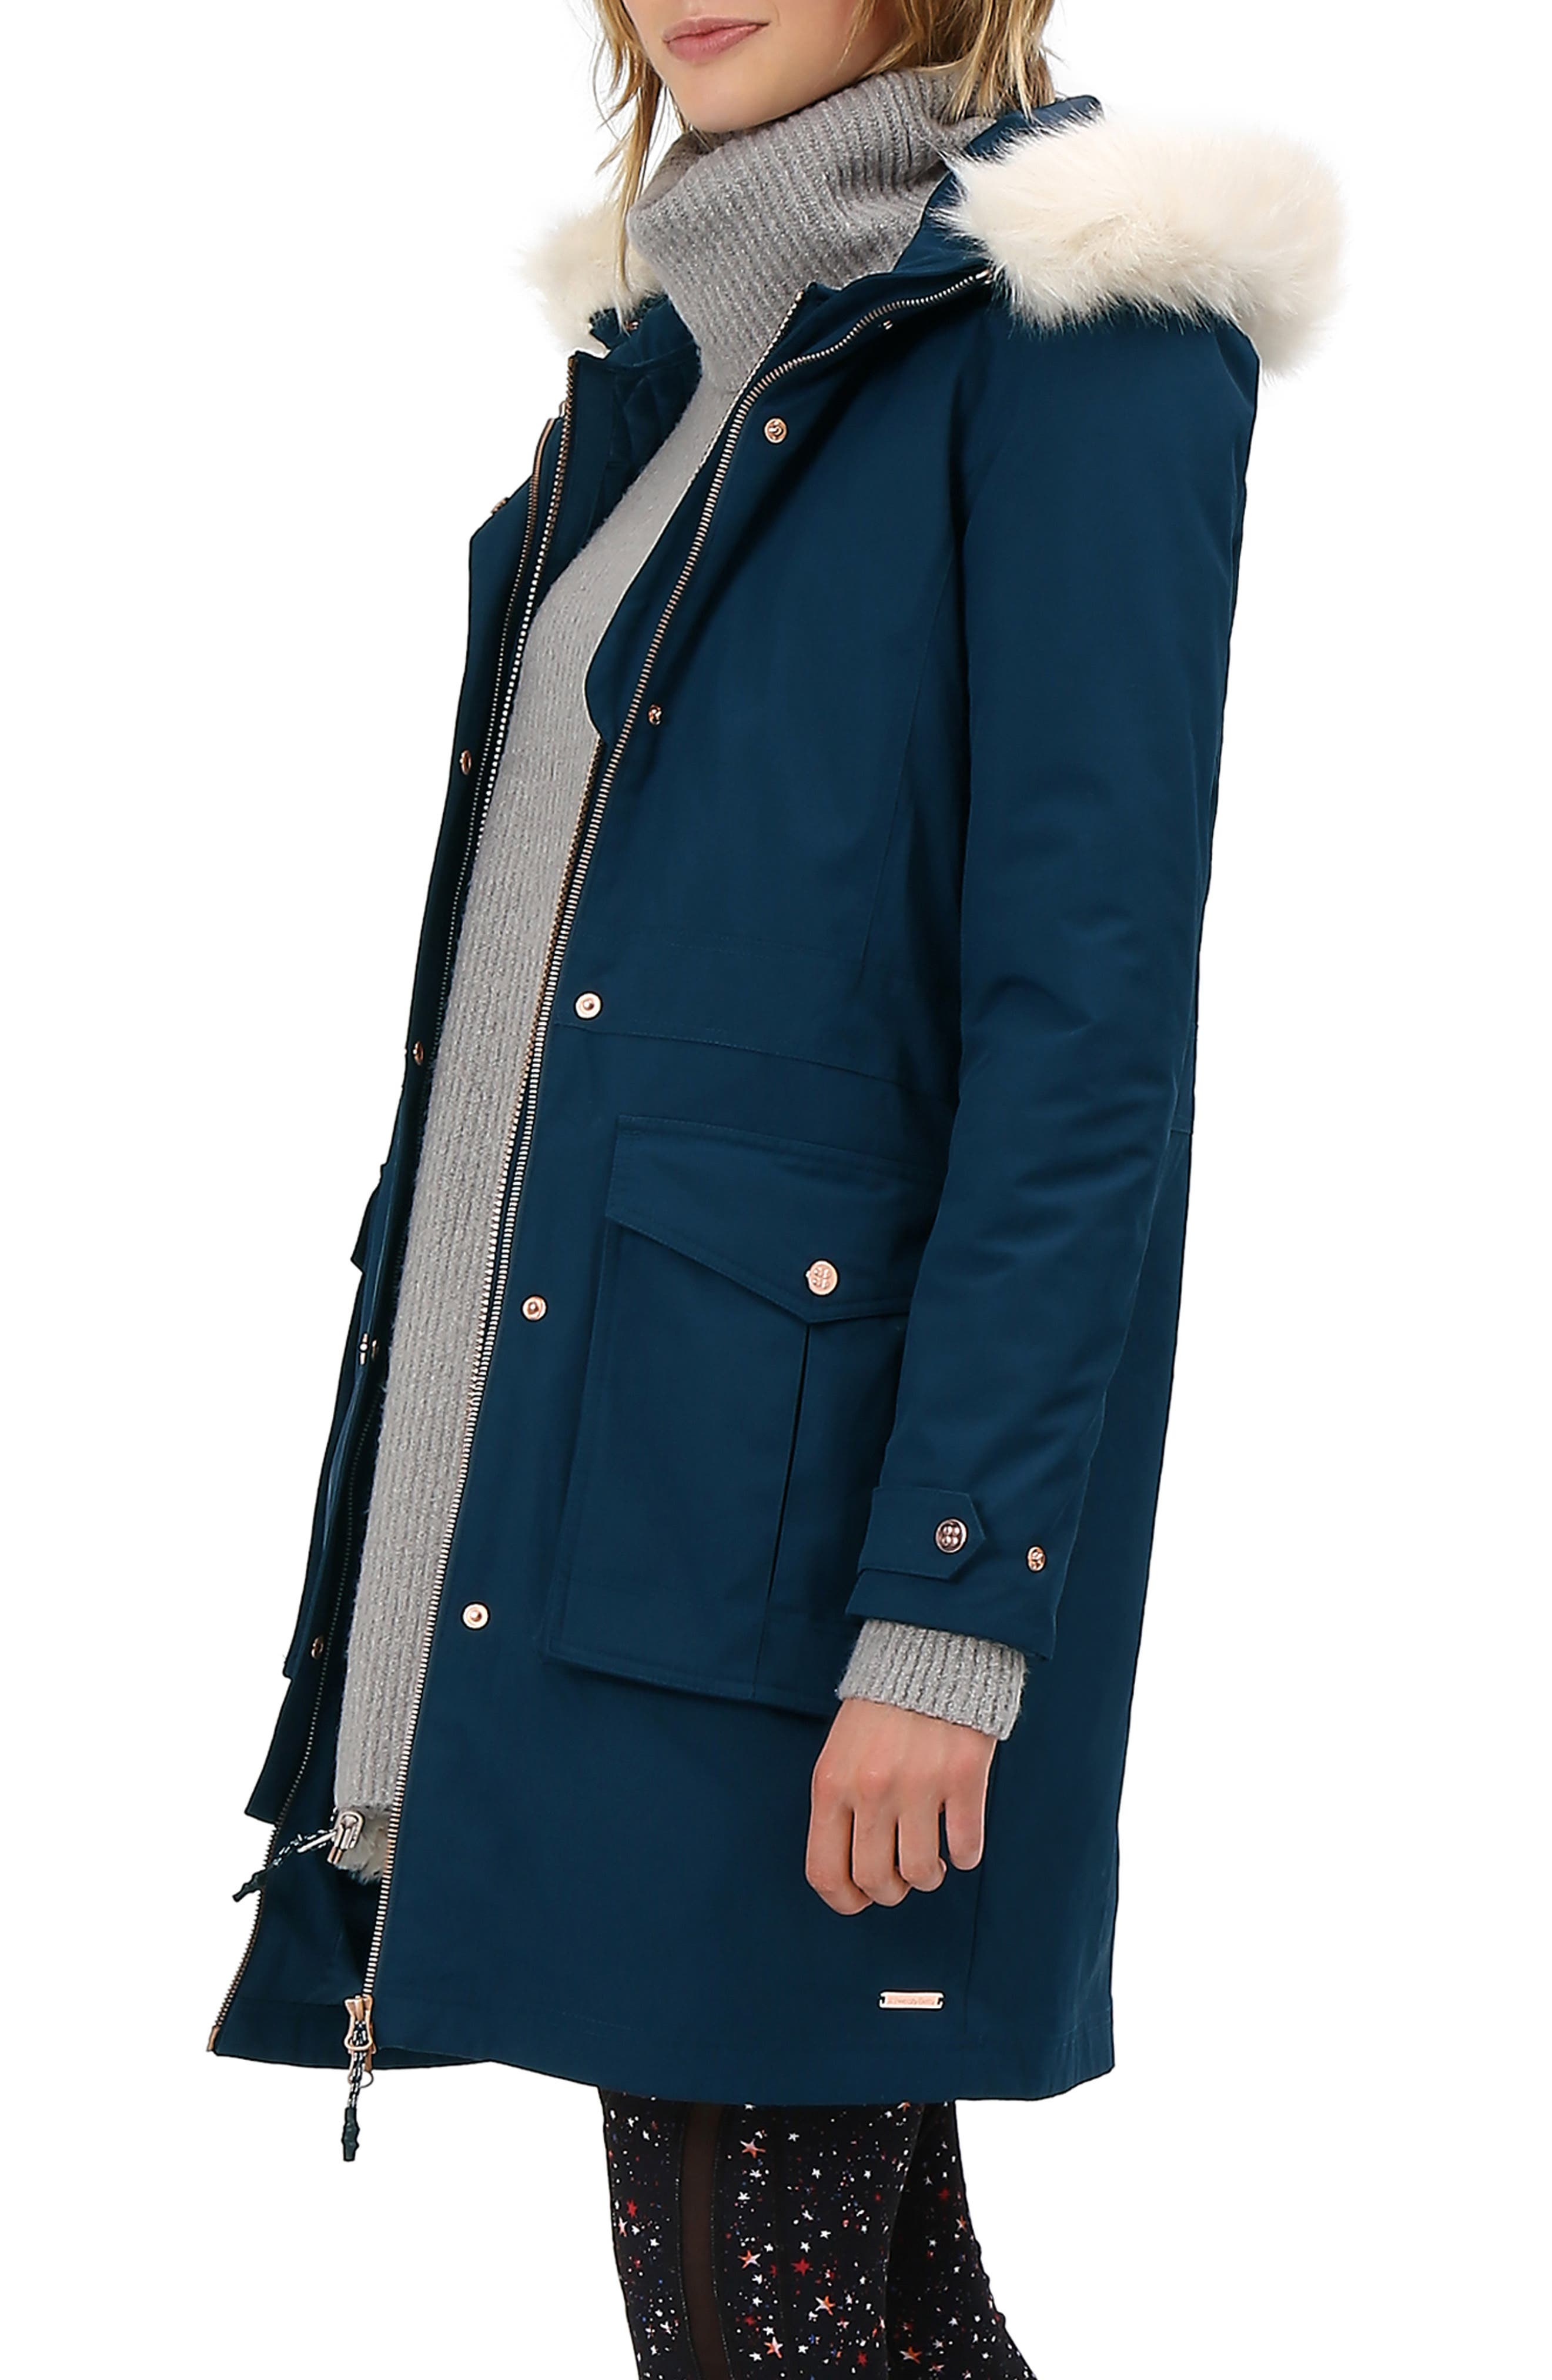 Highlands Three-In-One Faux Fur & Faux Shearling Coat,                             Main thumbnail 1, color,                             BEETLE BLUE